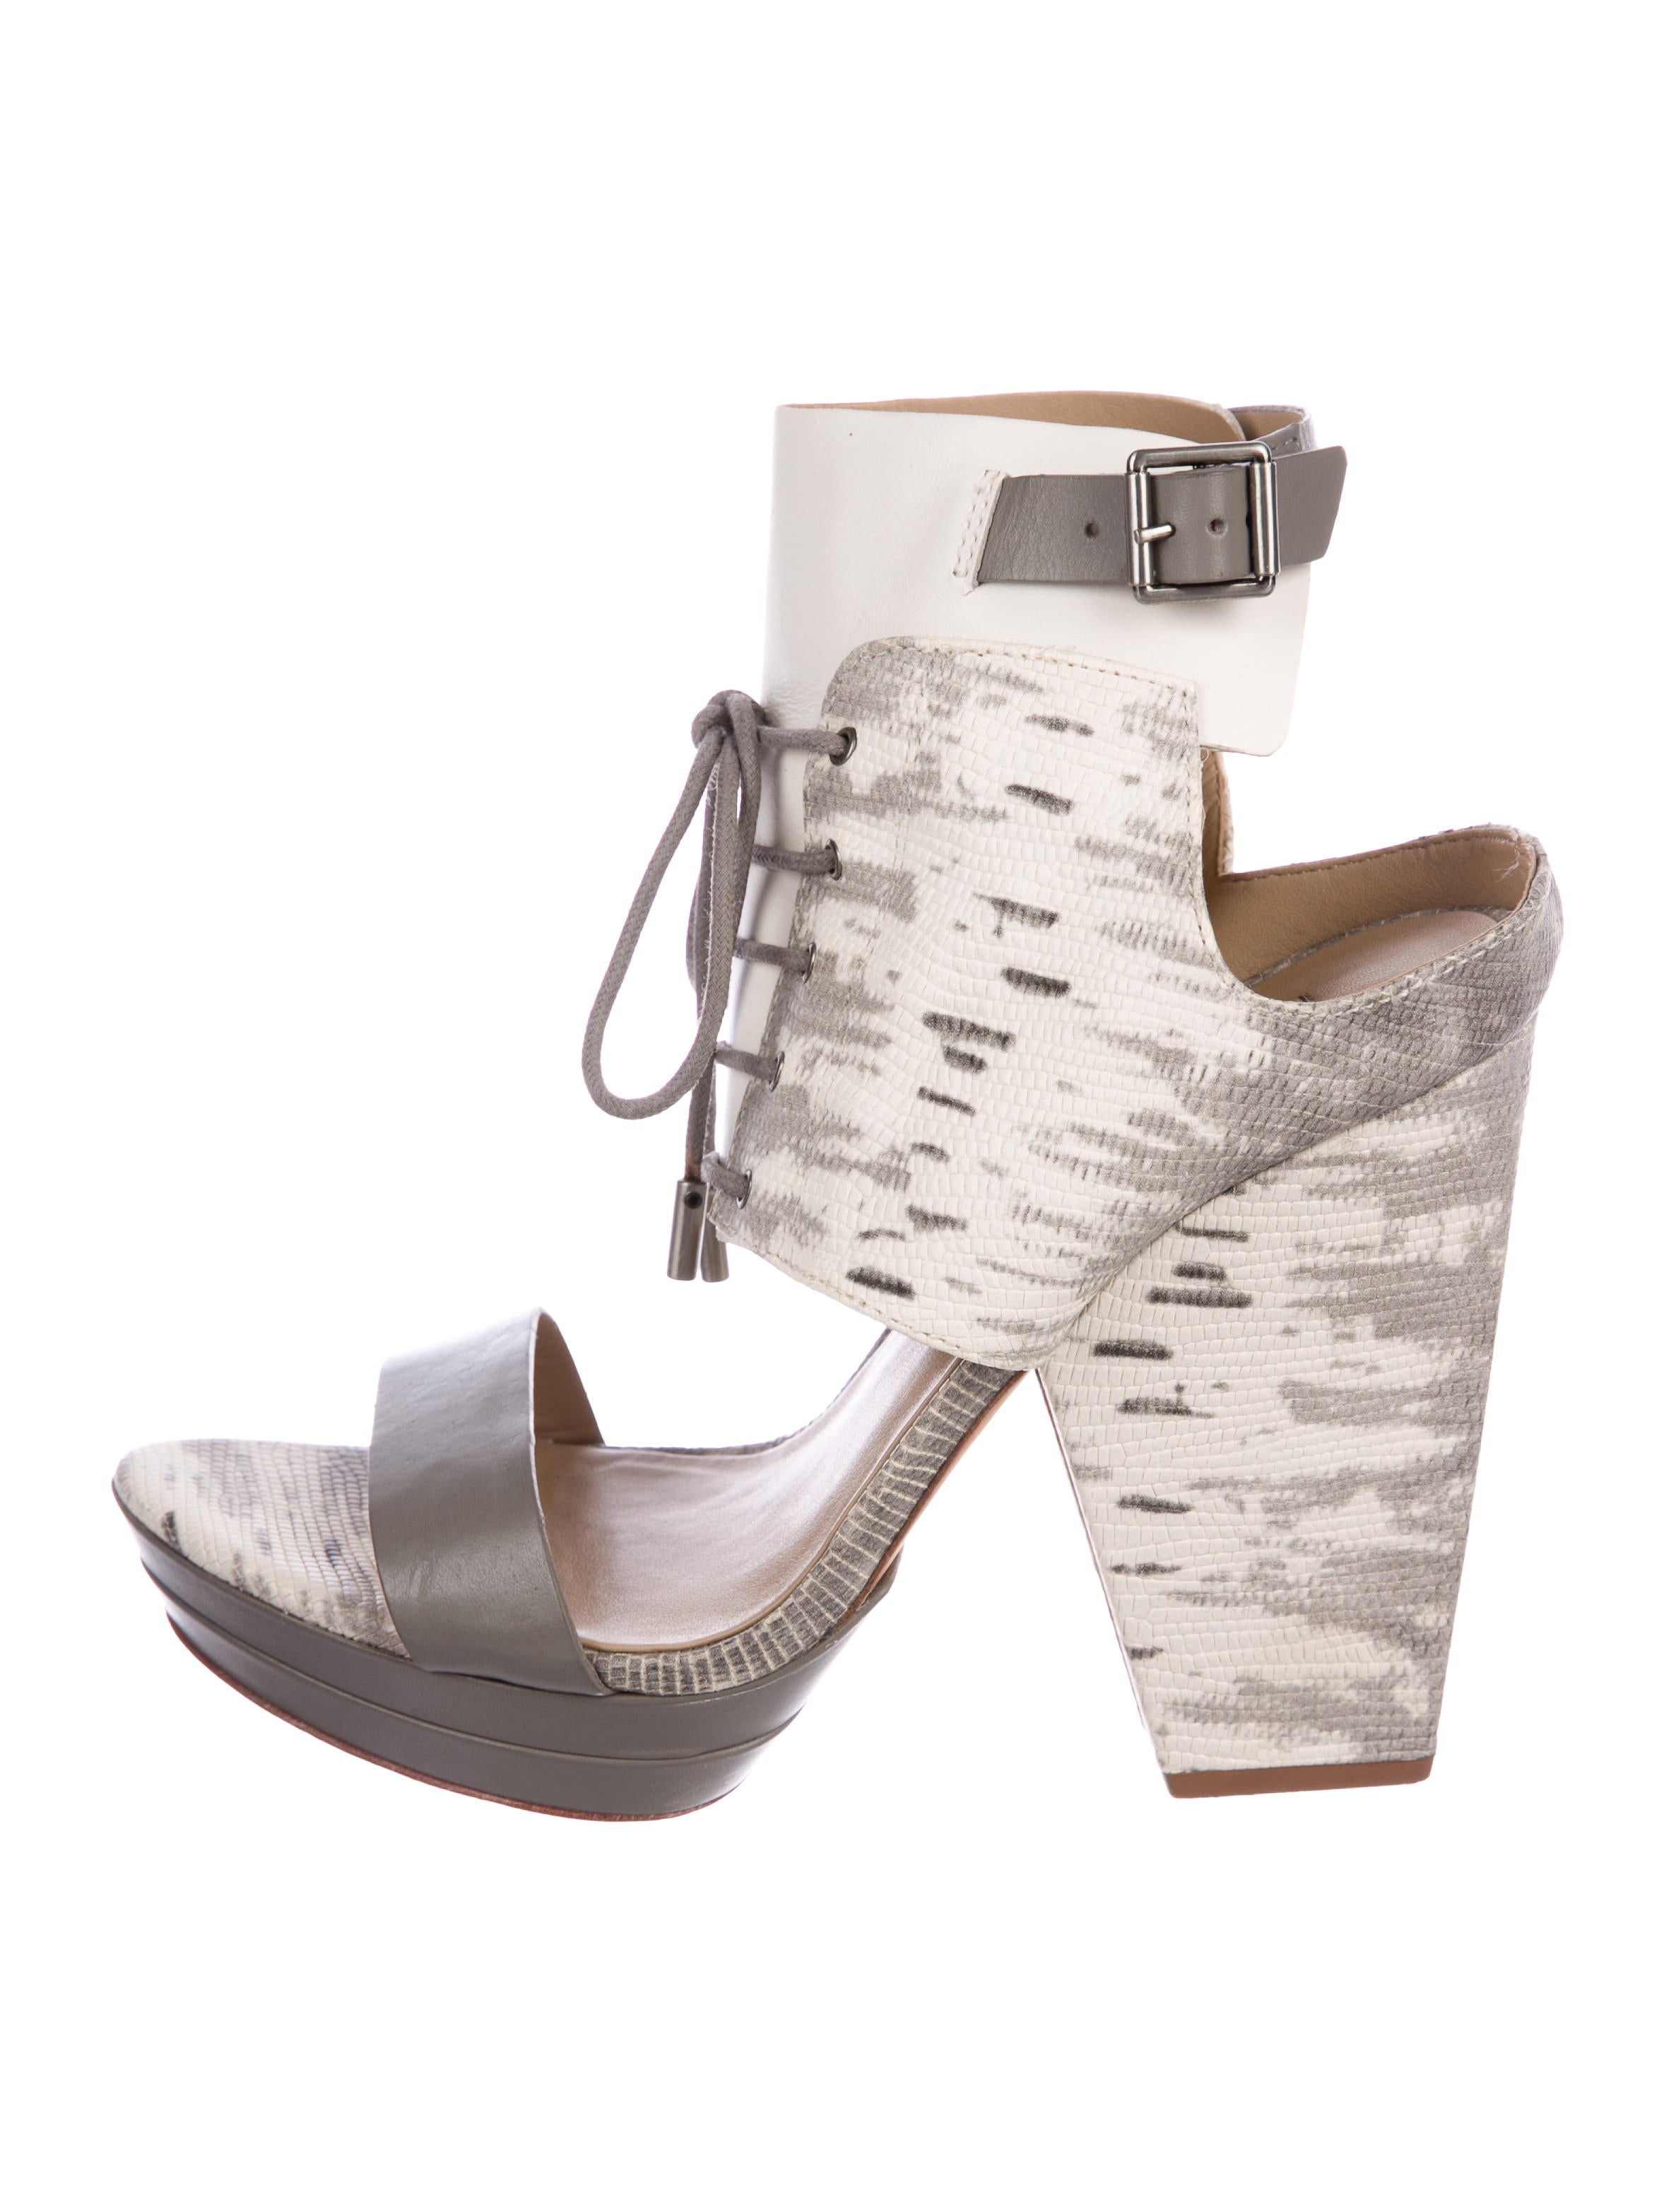 authentic online cheap sale classic BCBG Max Azria Embossed Lace-Up Sandals free shipping explore yRMu0GI